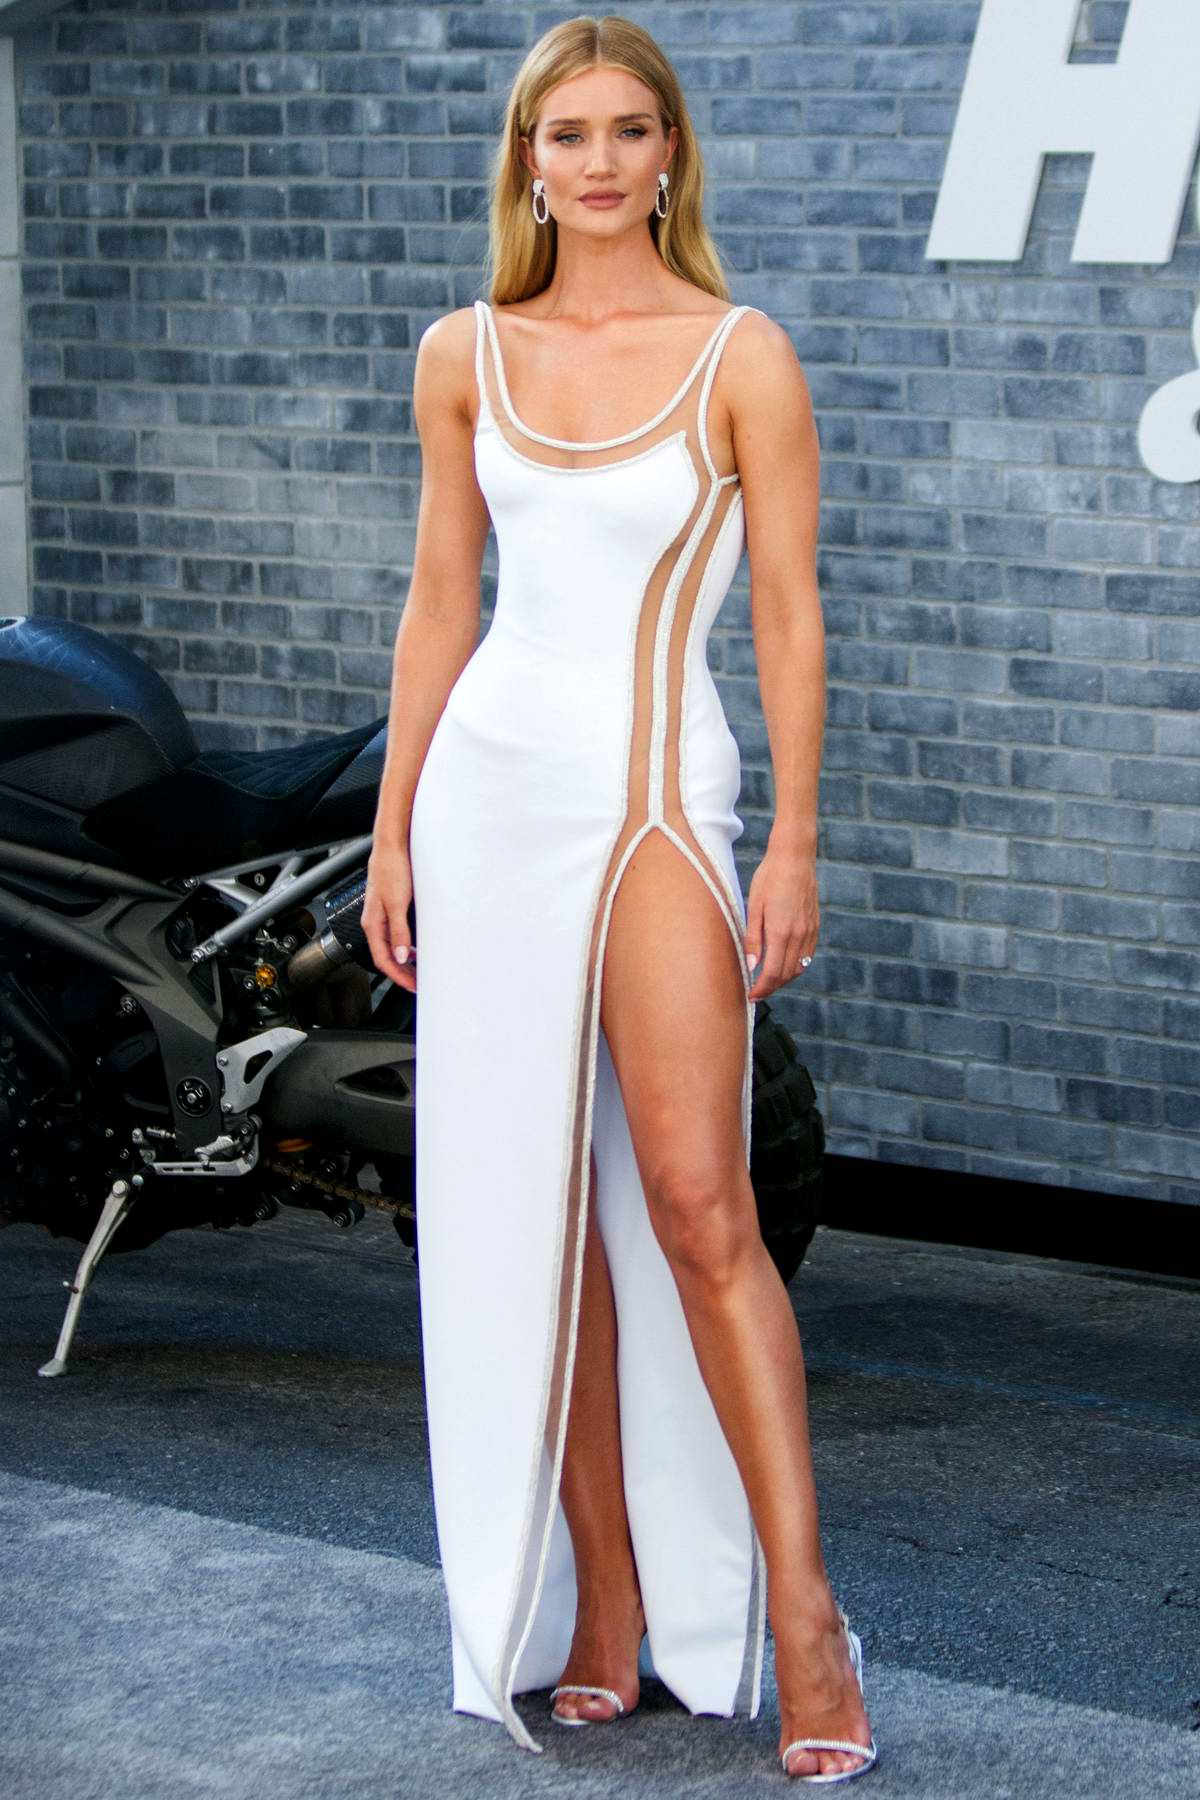 Rosie Huntington-Whiteley attends the Premiere of 'Fast & Furious Presents: Hobbs & Shaw' at Dolby Theatre in Hollywood, California